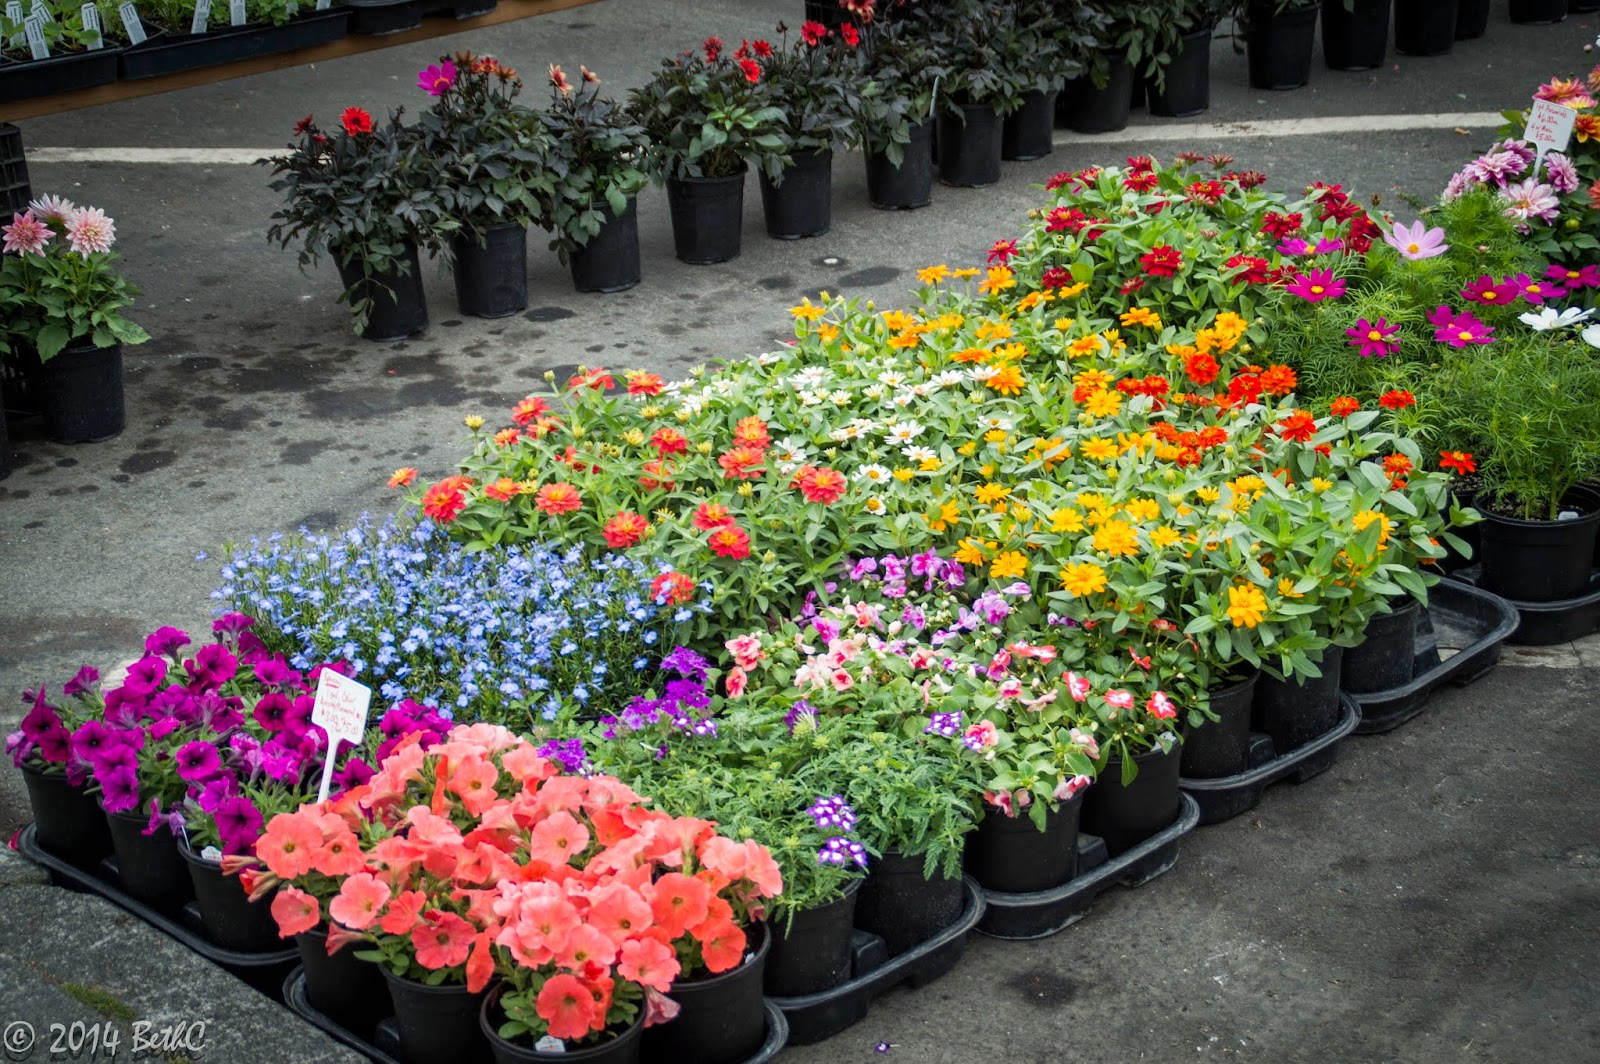 Backyard Flower Farmer : You can even buy flowers for your garden at the Farmers Market!